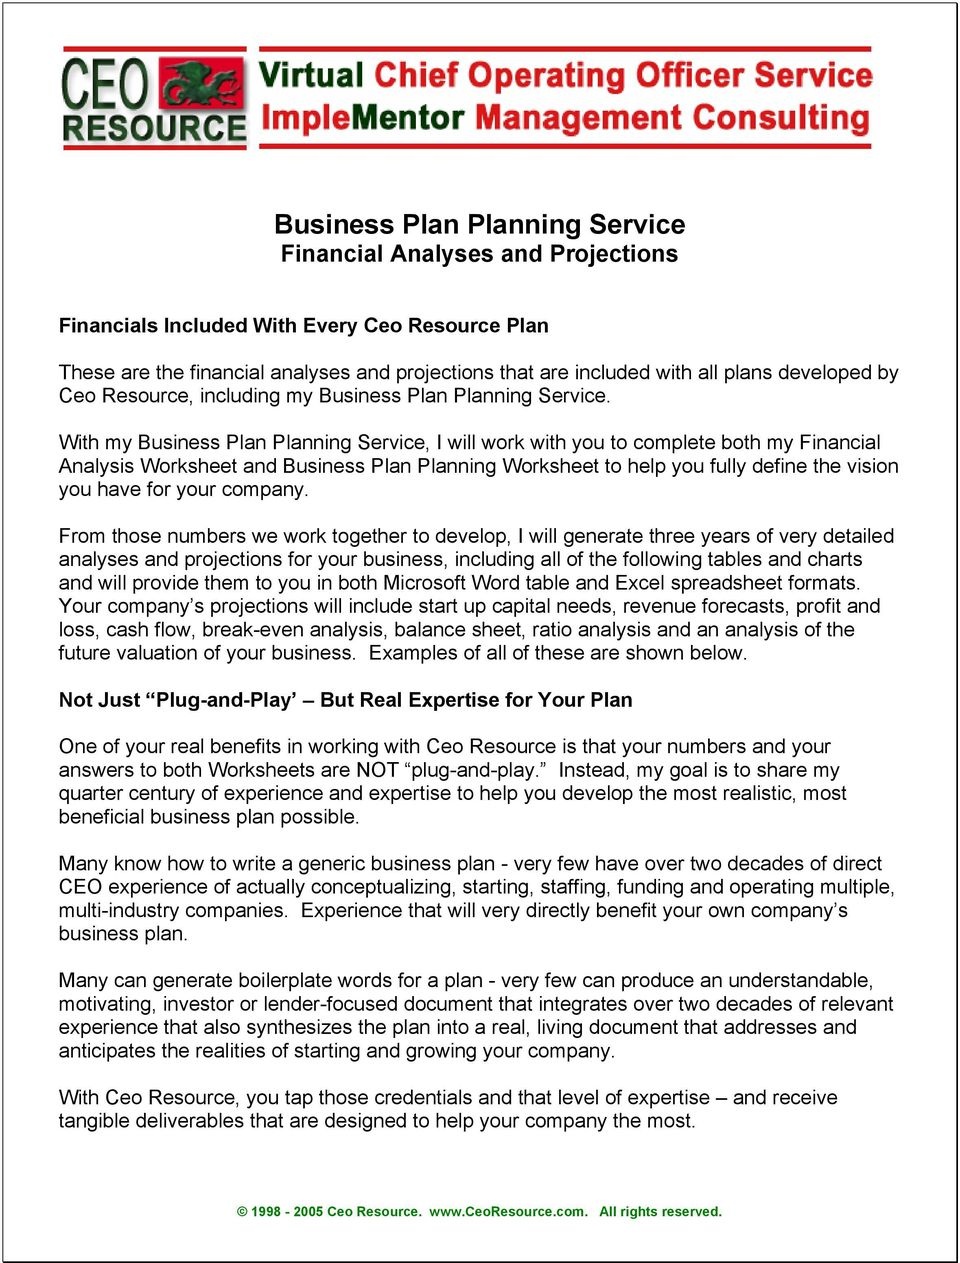 With my Business Plan Planning Service, I will work with you to complete both my Financial Analysis Worksheet and Business Plan Planning Worksheet to help you fully define the vision you have for